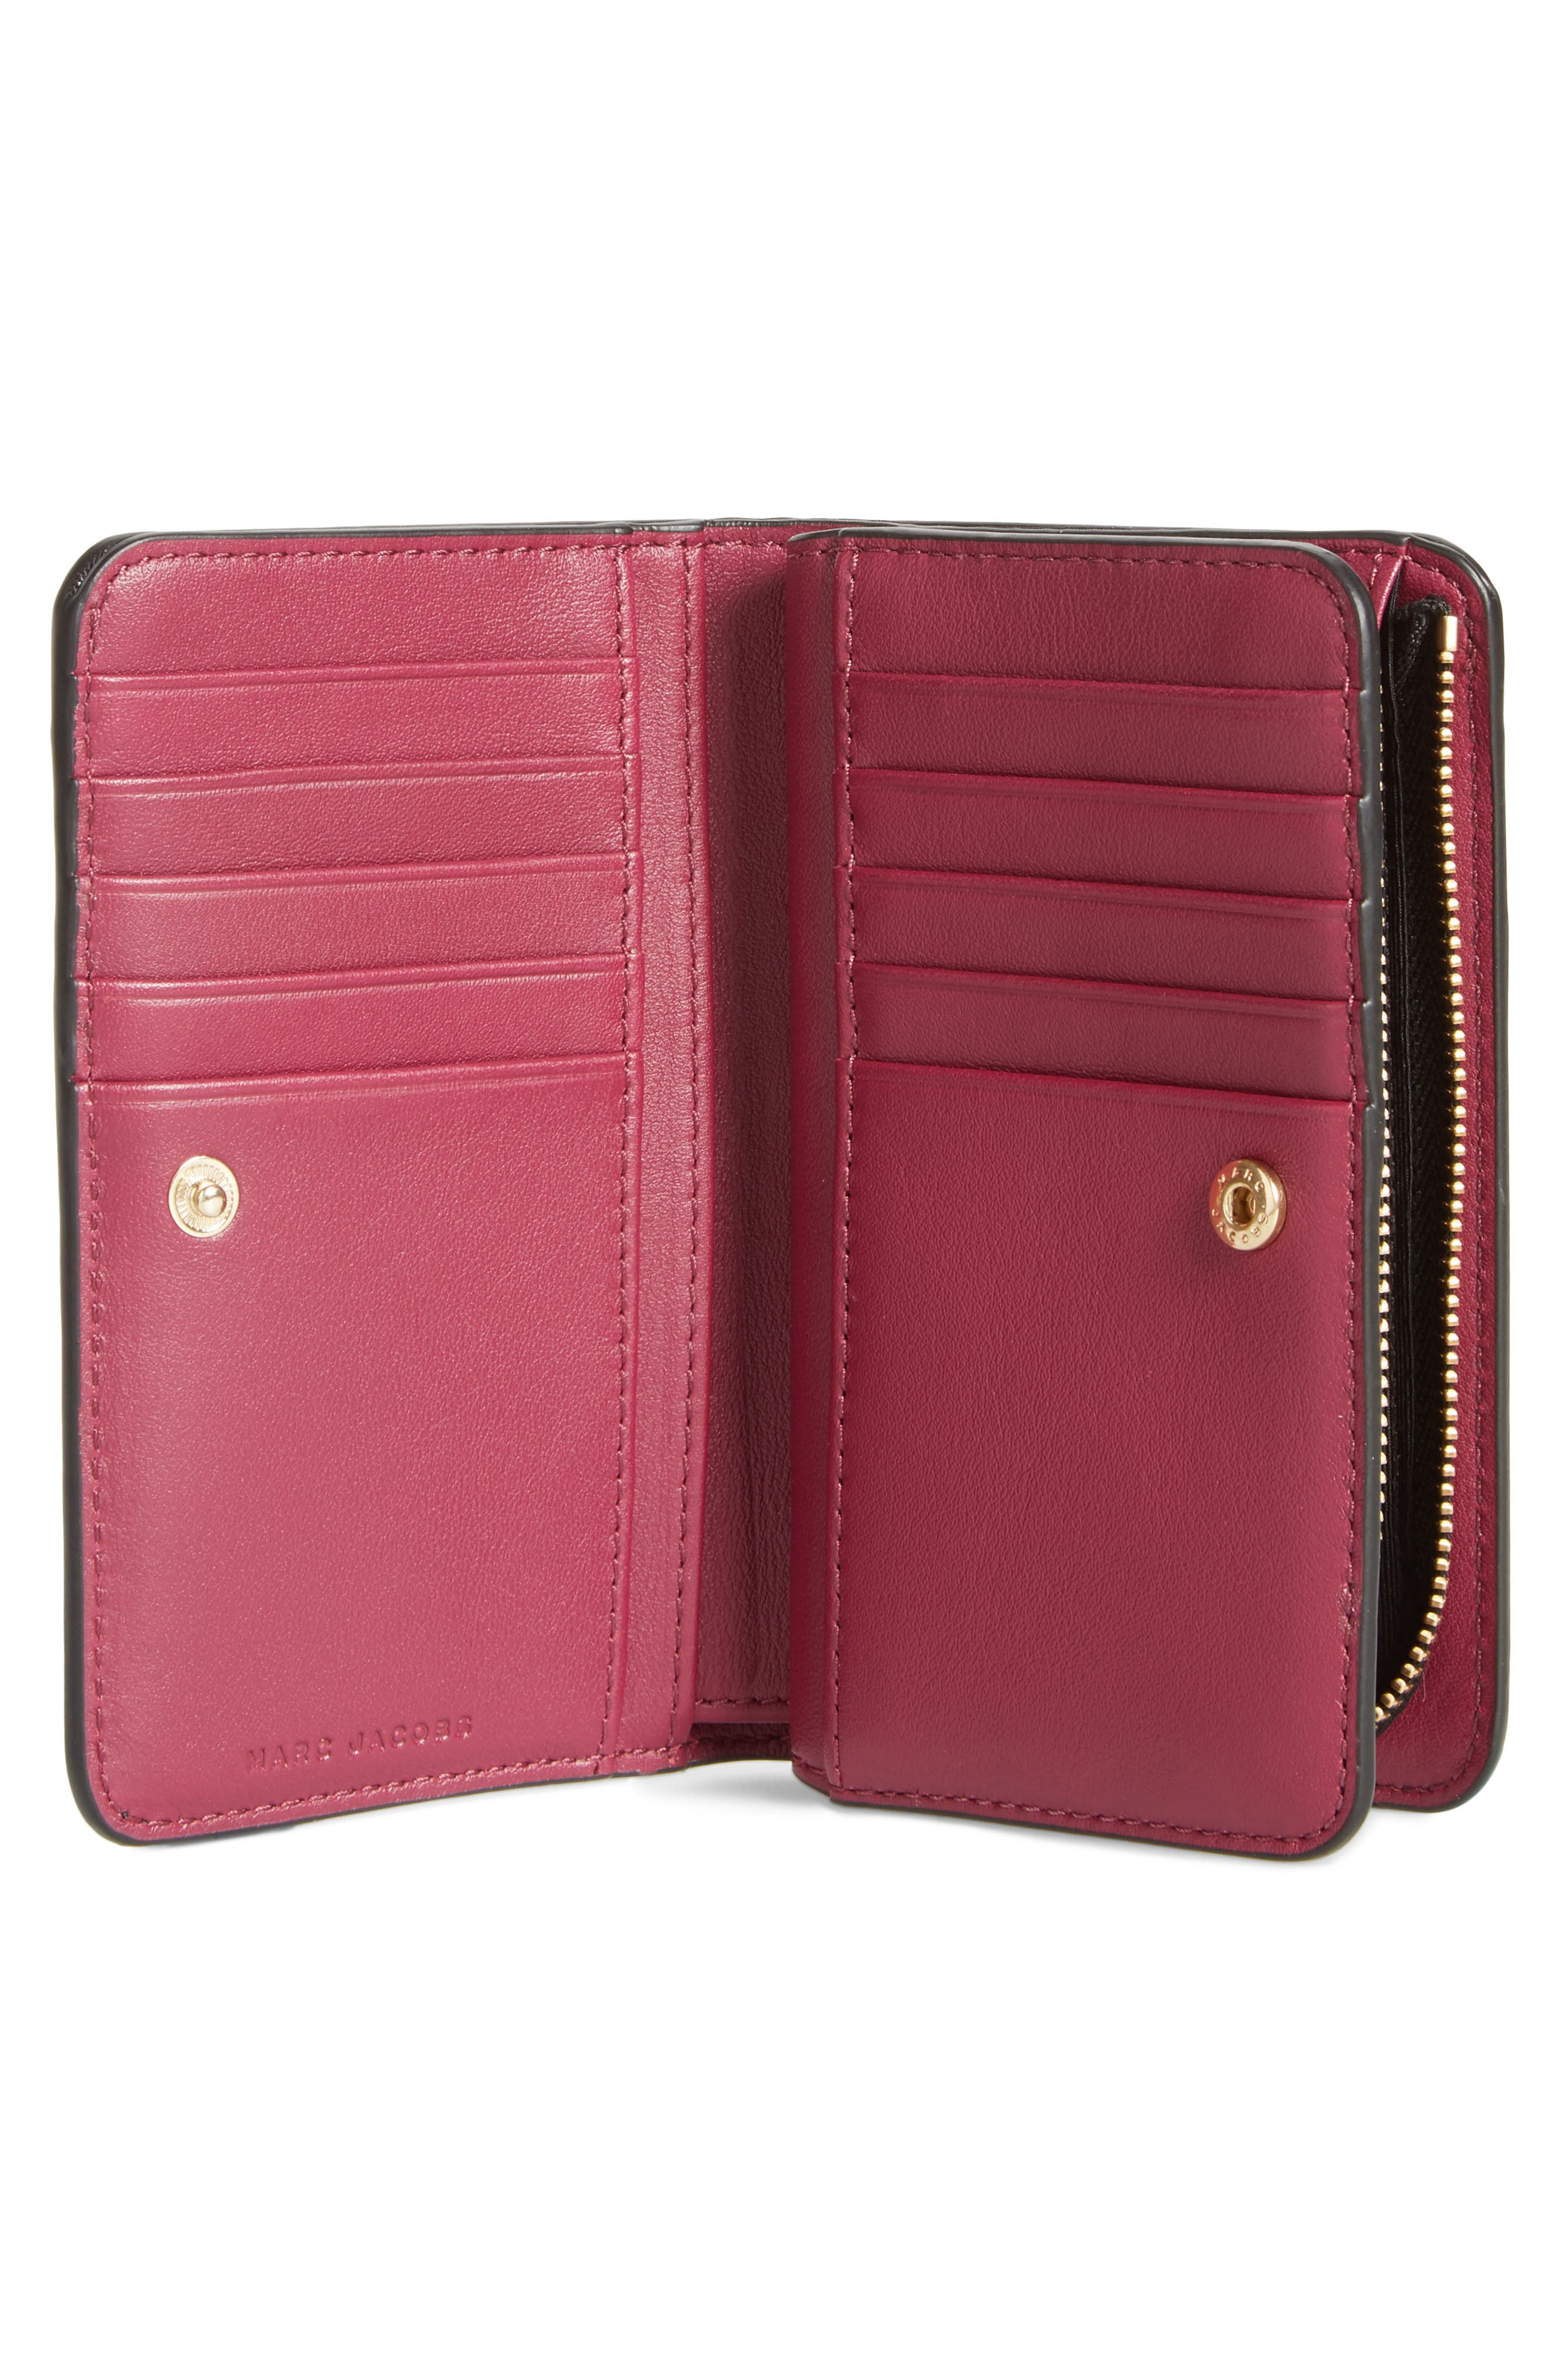 Saffiano Leather Compact Wallet,                             Alternate thumbnail 4, color,                             001